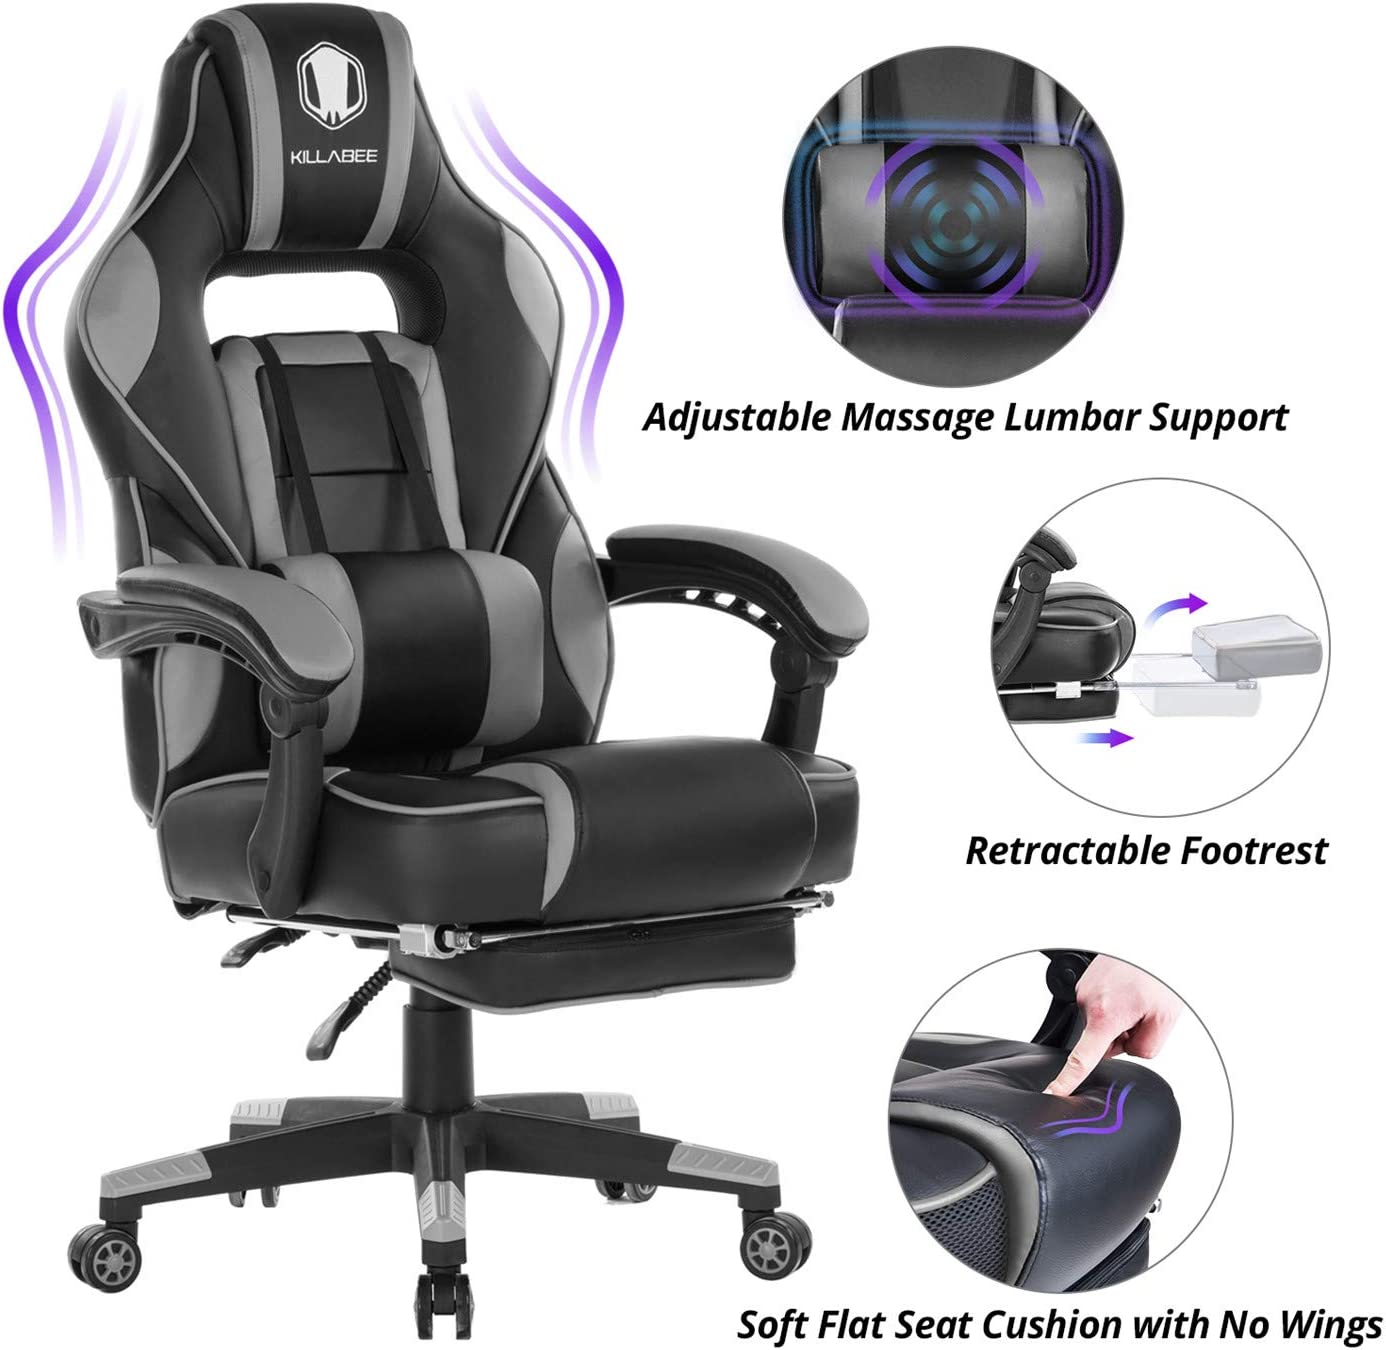 KILLABEE Massage Gaming Chair High Back PU Leather PC Racing Computer Desk Office Swivel Recliner with Retractable Footrest and Adjustable Lumbar Support, Gray Black